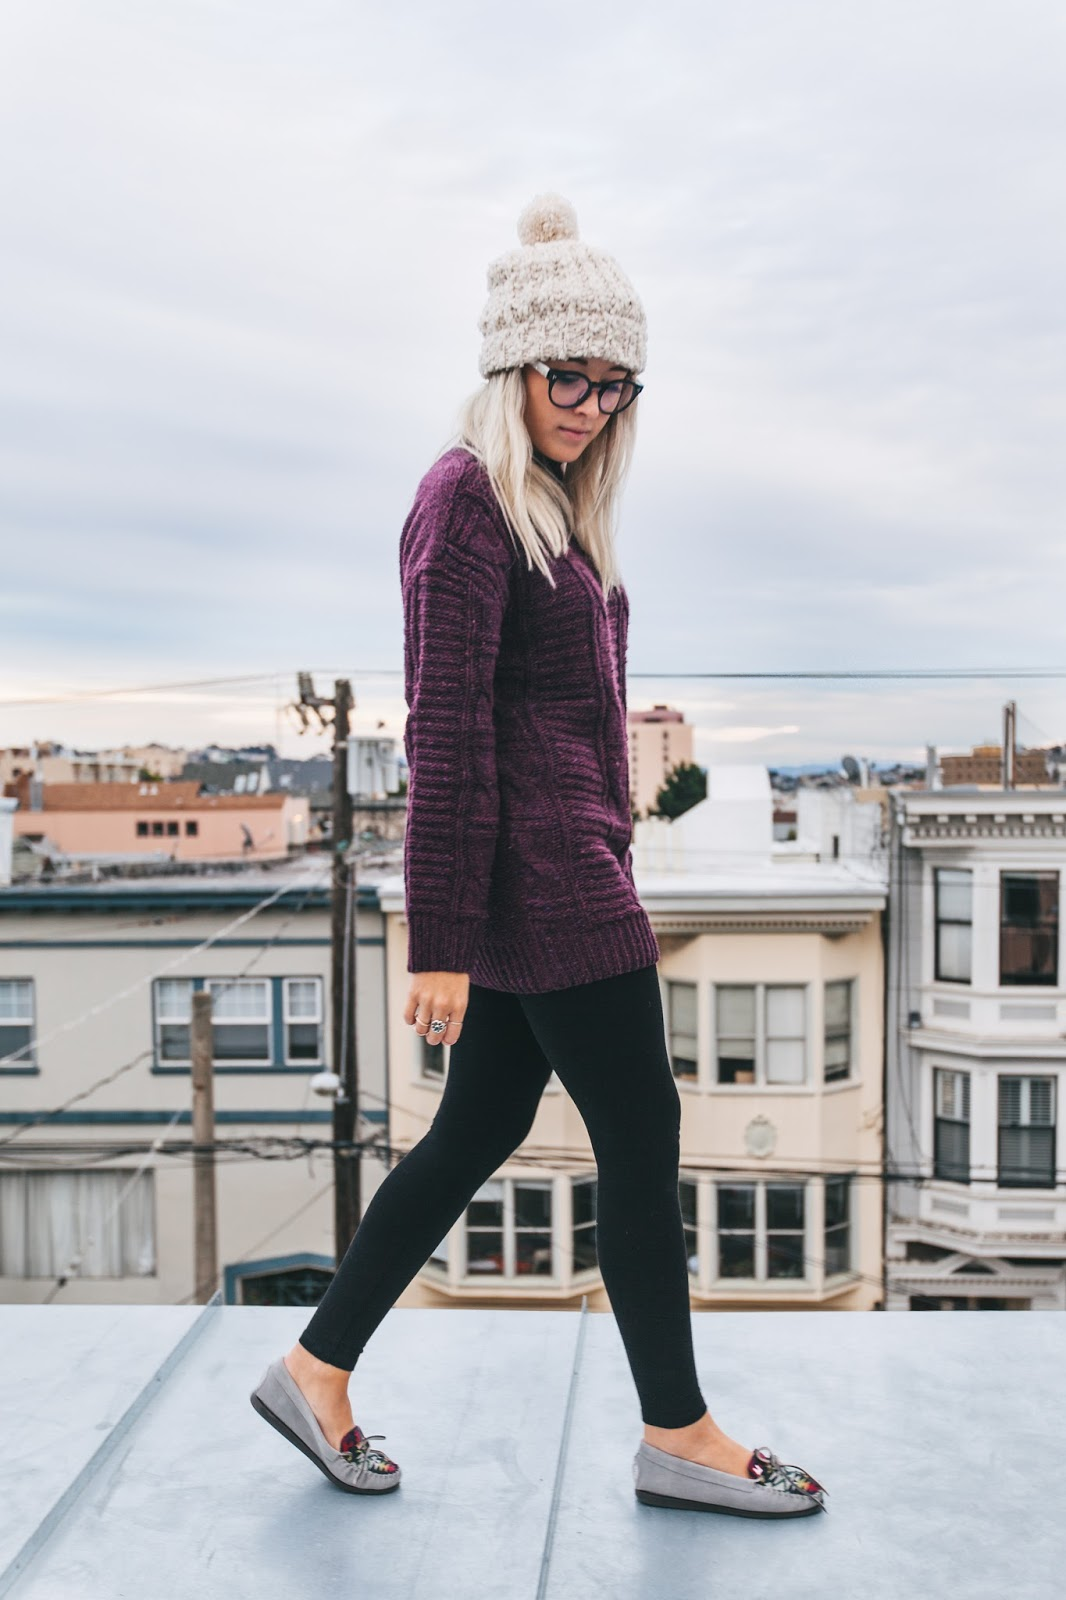 cozy outfits, reading nook, fashion blogger, sf style, san francisco fashion blogger, chunky sweater, garage clothing, le bunny bleu, crimson, cute moccasins, bryn newman, stone fox style, stone cold fox, stone fox